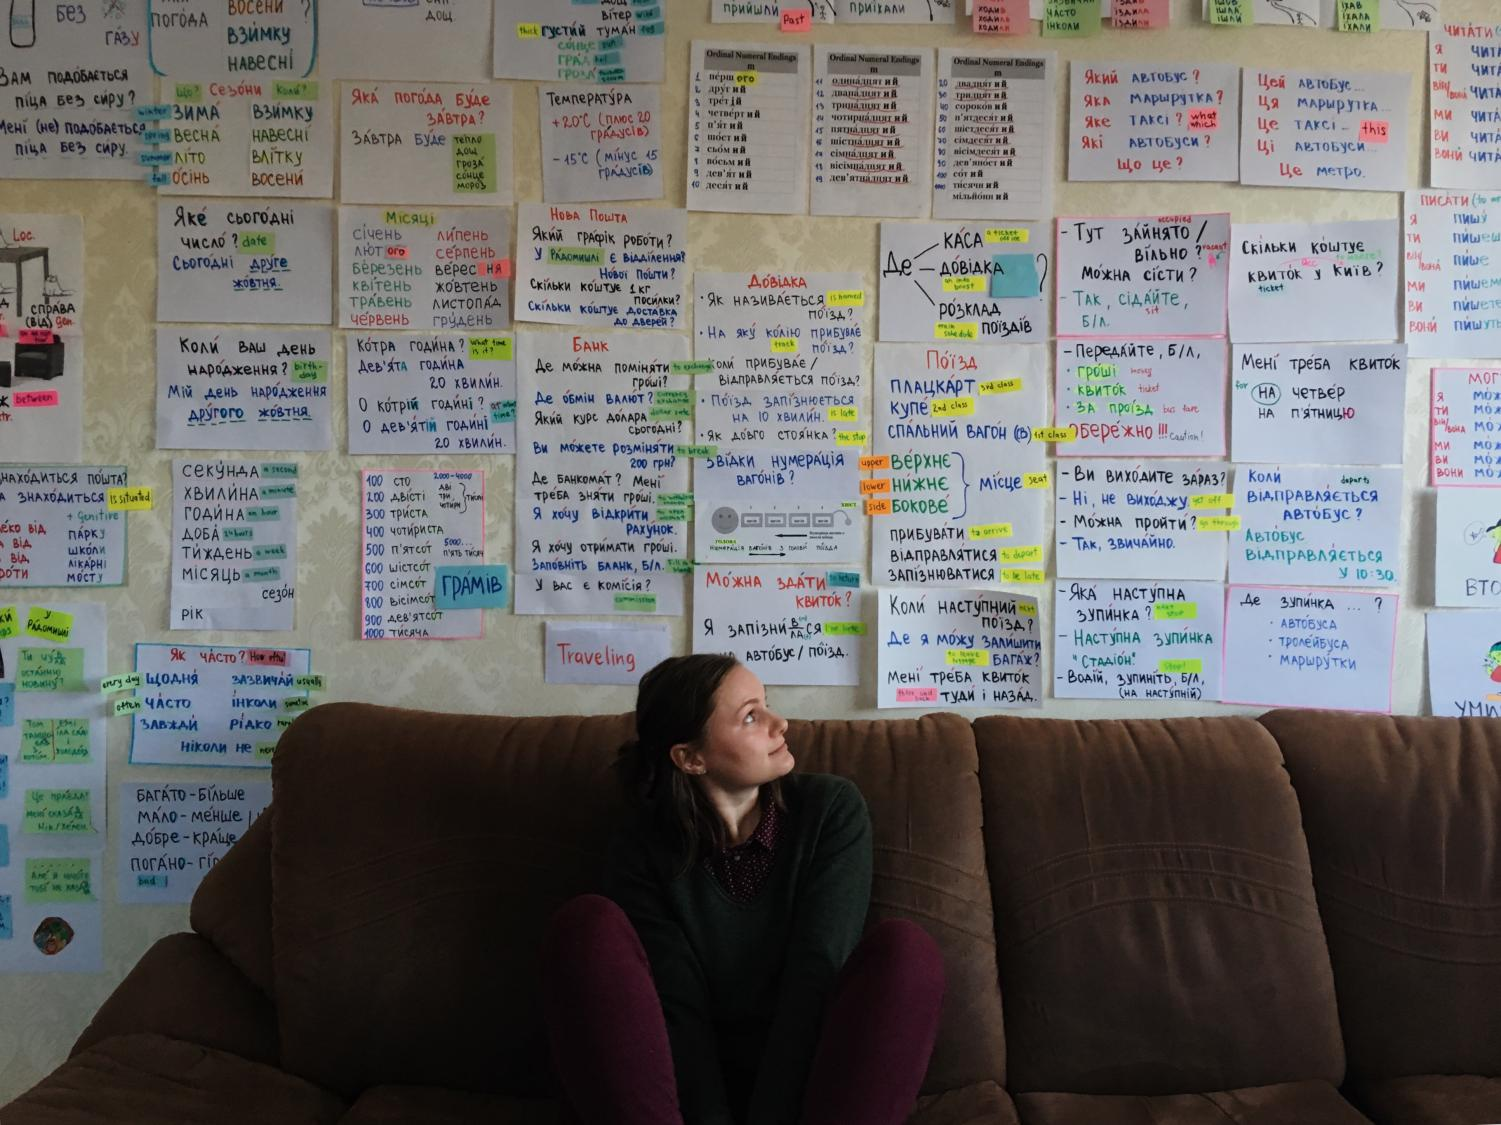 During her training, Katya had intensive language learning. Every time she'd learn something new, it would be taped onto the wall of her language teacher's house. This picture is only showing about 1/10 of everything that was taped on the walls!